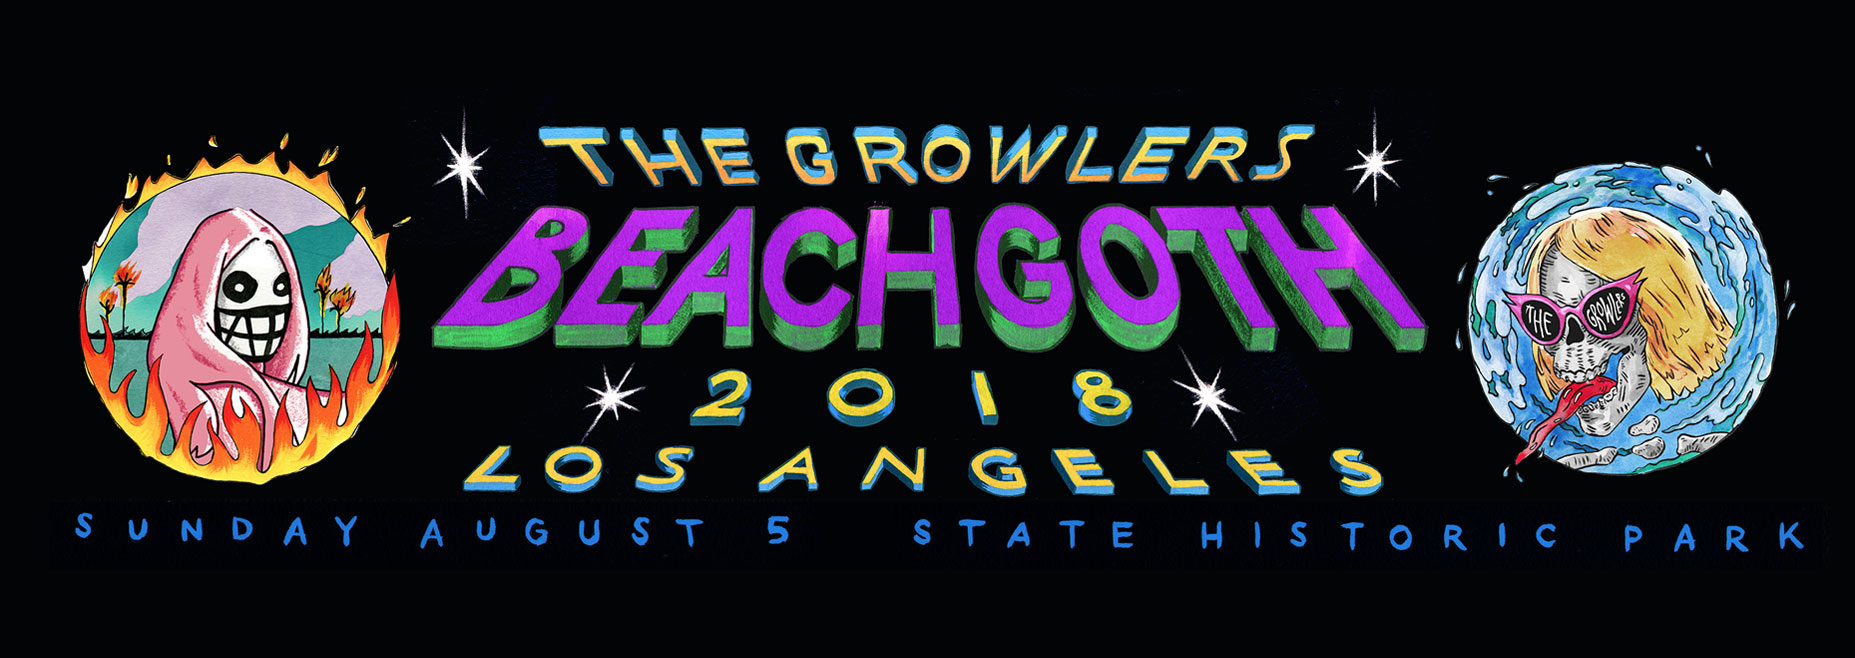 THE GROWLERS BEACH GOTH AUGUST 2018 LOS ANGELES